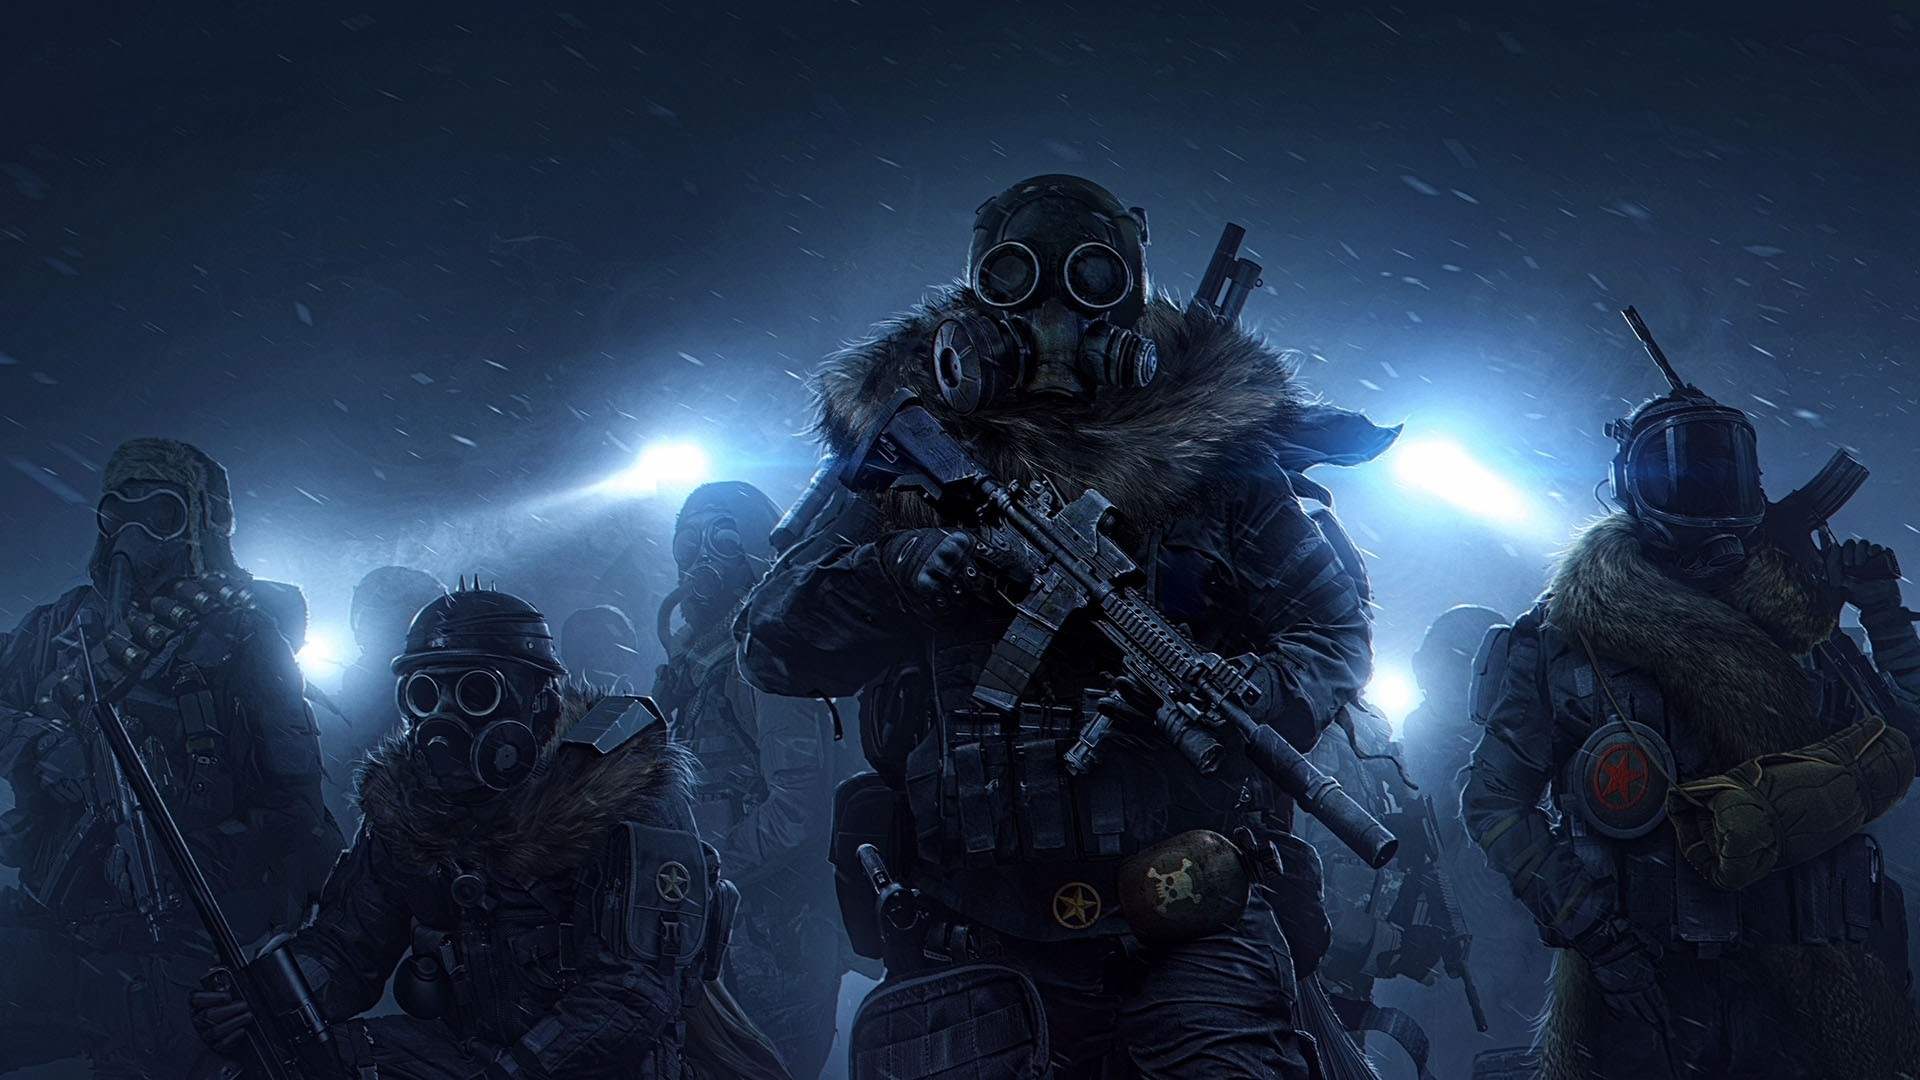 Wasteland 3 Gets a Raunchy But Silly New Trailer - J Station X